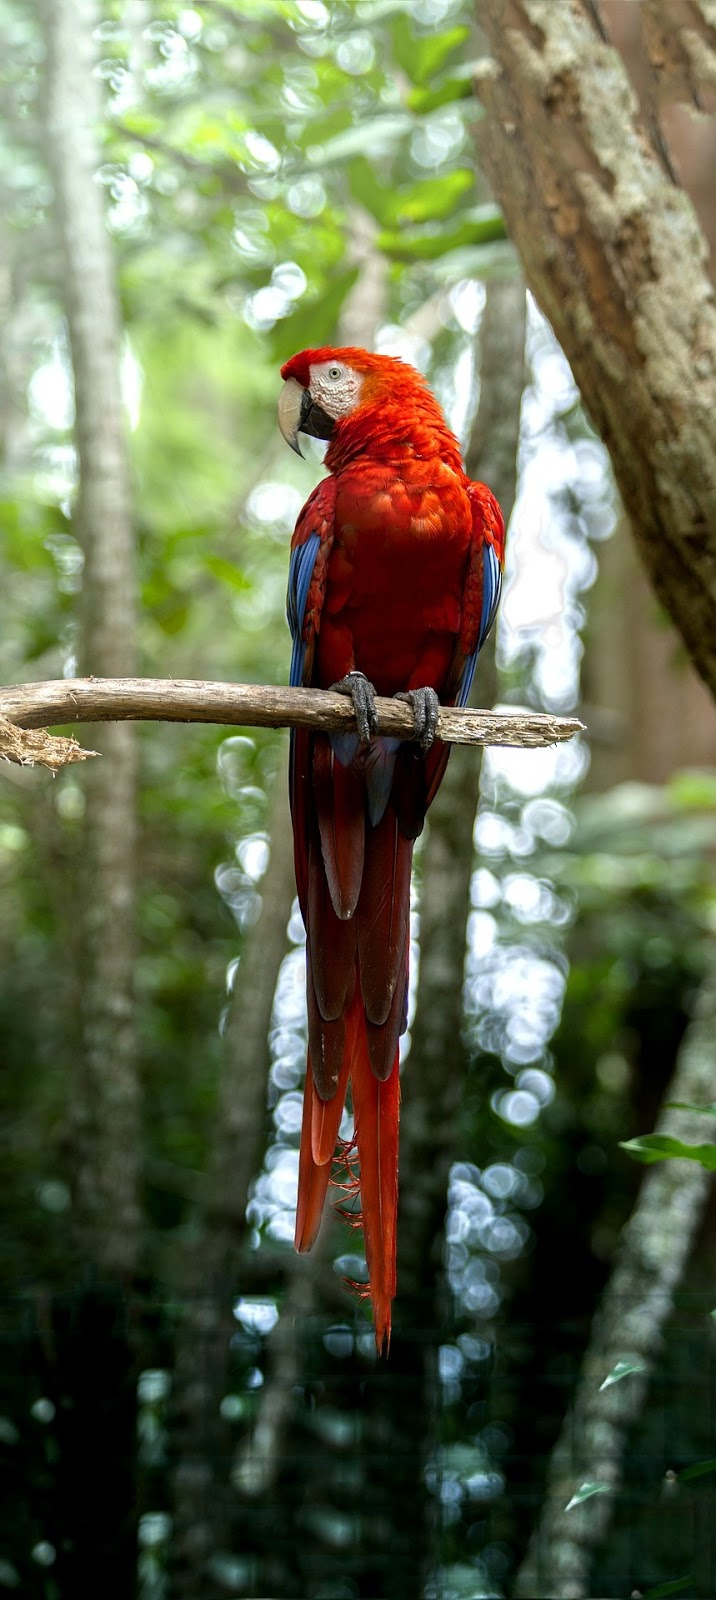 A parrot displays it's beauty.